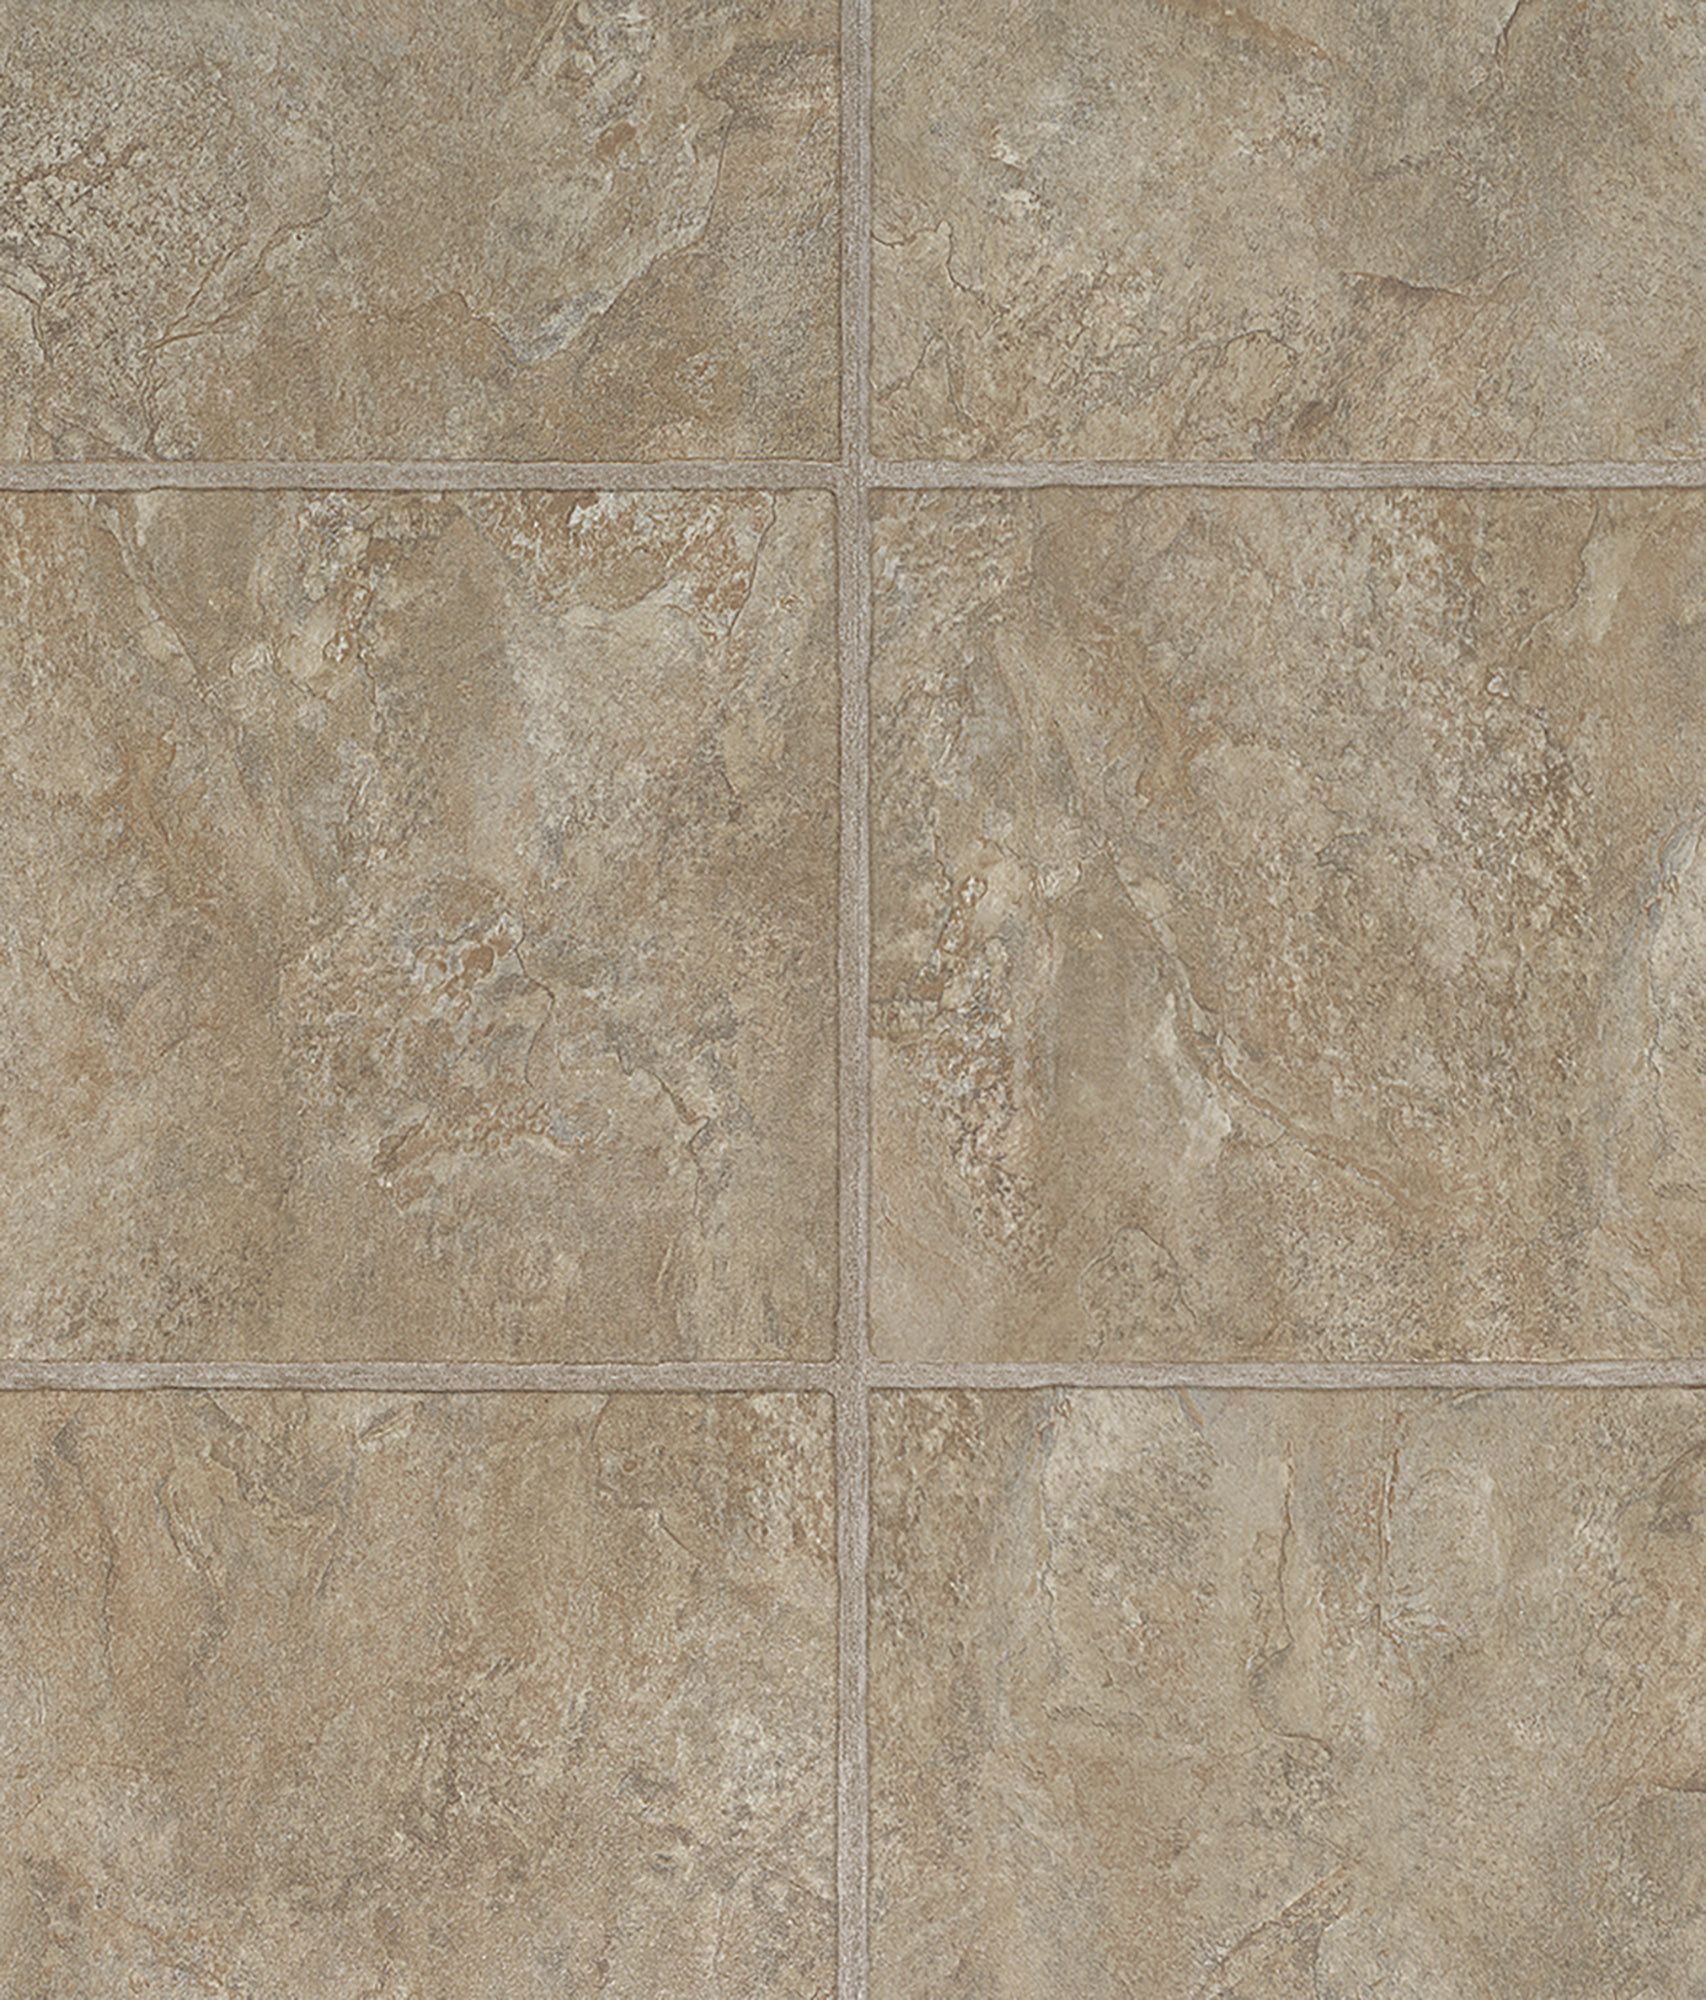 Builddirect Ovio Vinyl Tile 4mm Pvc Click Lock Grouted Collection